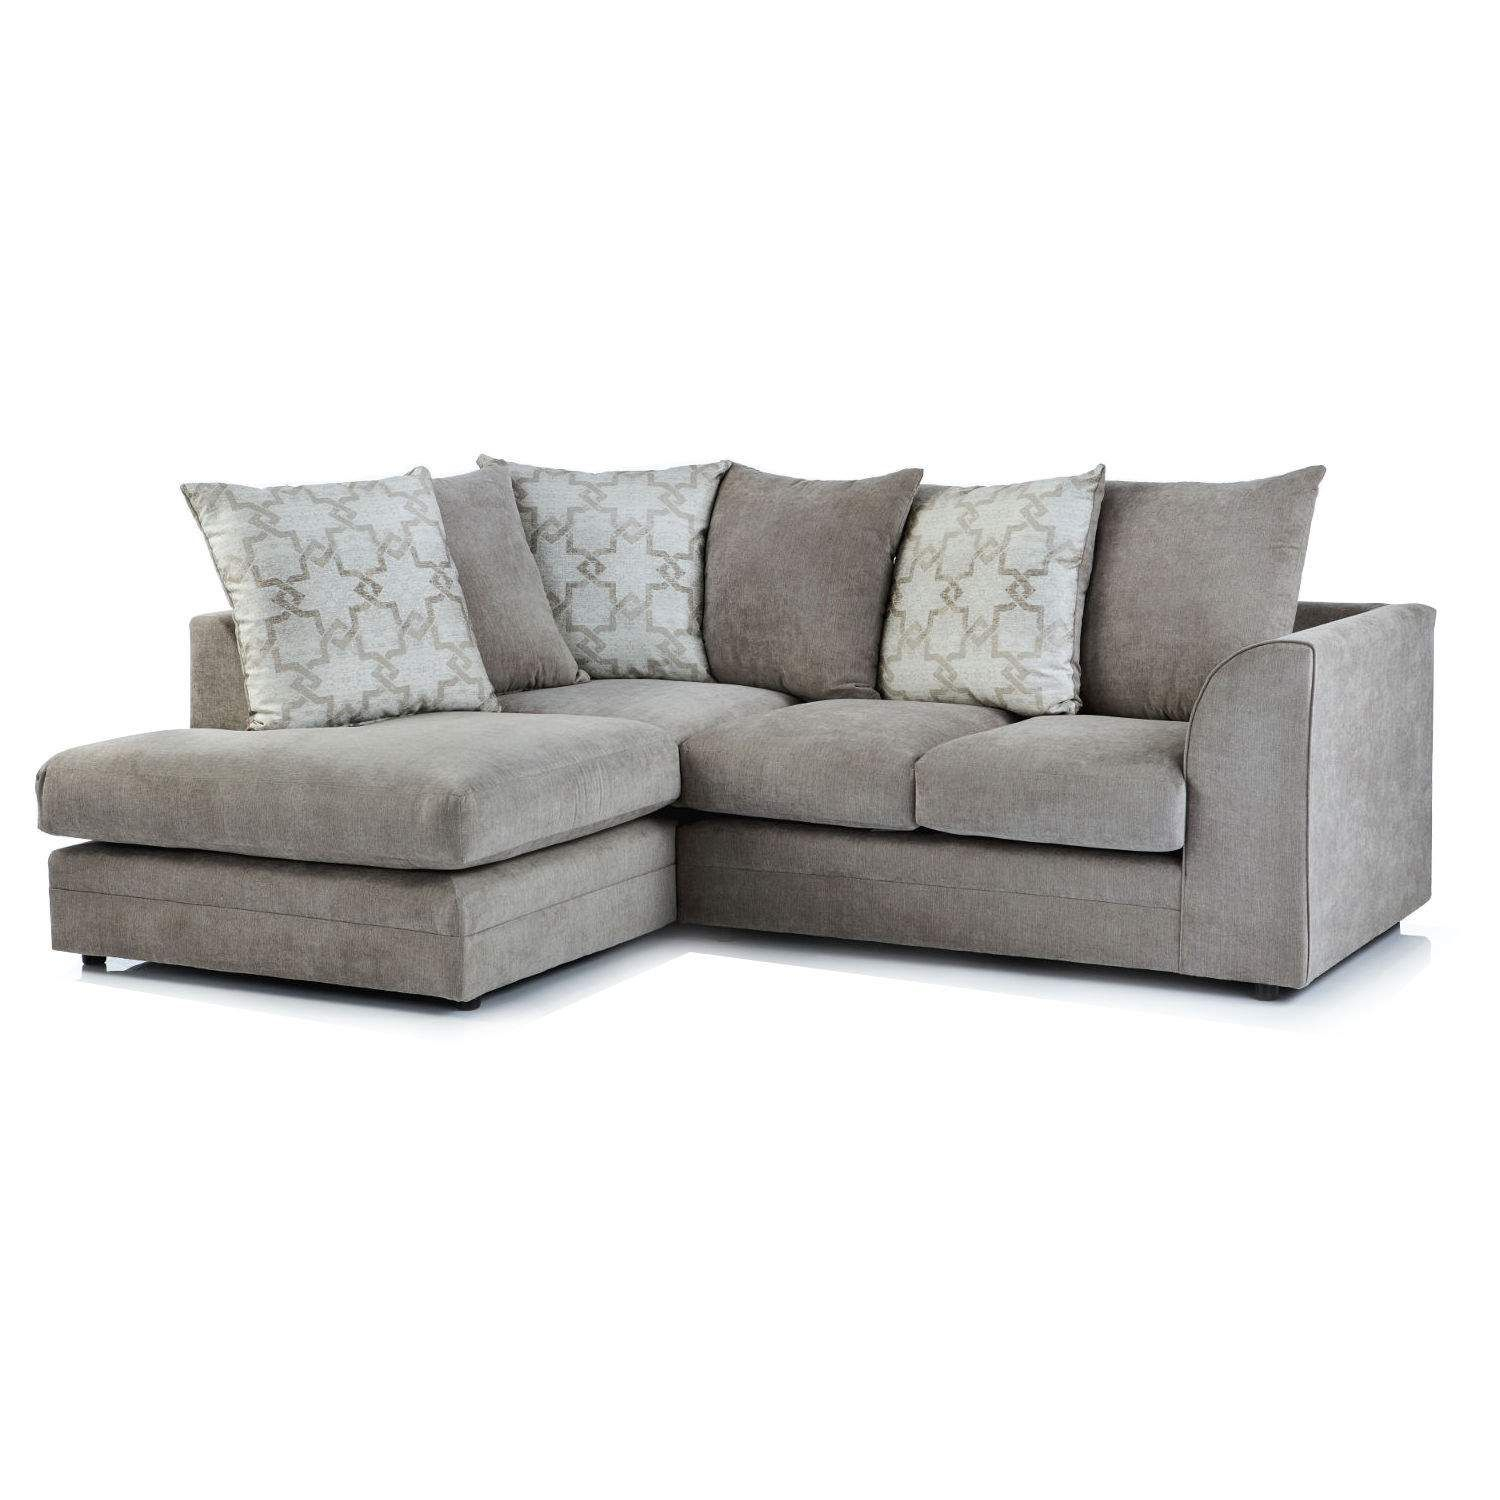 Luxury Corner Sofa With Chaise 44 In Best Modern Sofa With Regard To Modular Corner Sofas (View 6 of 15)